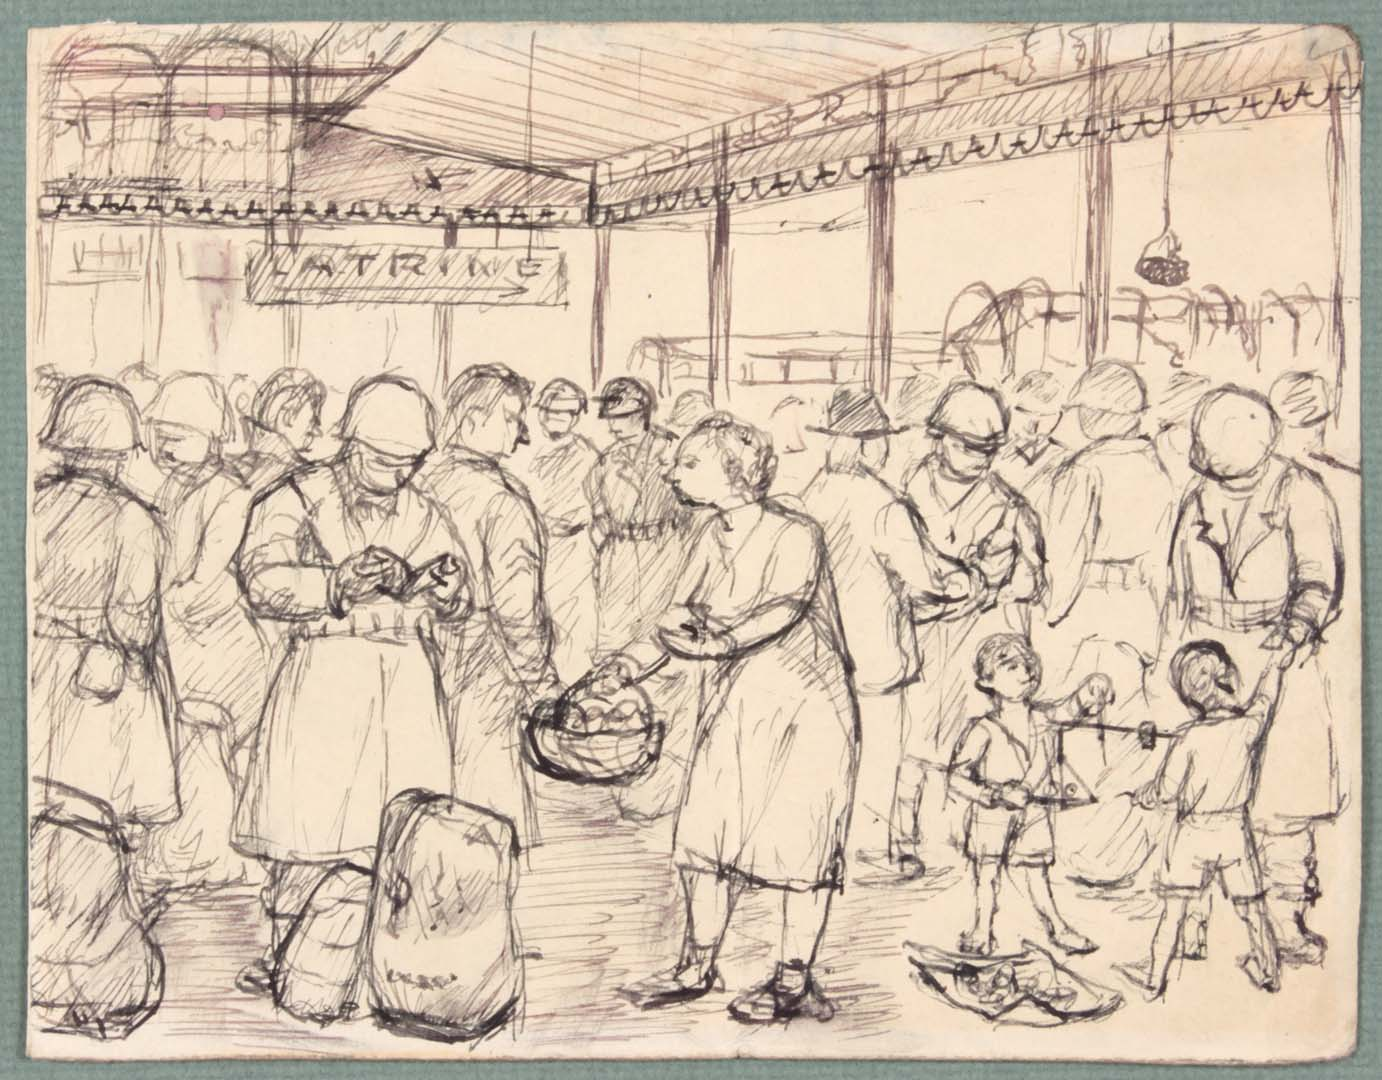 "1944 NT (Food Basket Naples Italy) Pen and Ink on Paper 4.8125"" x 6.125"""